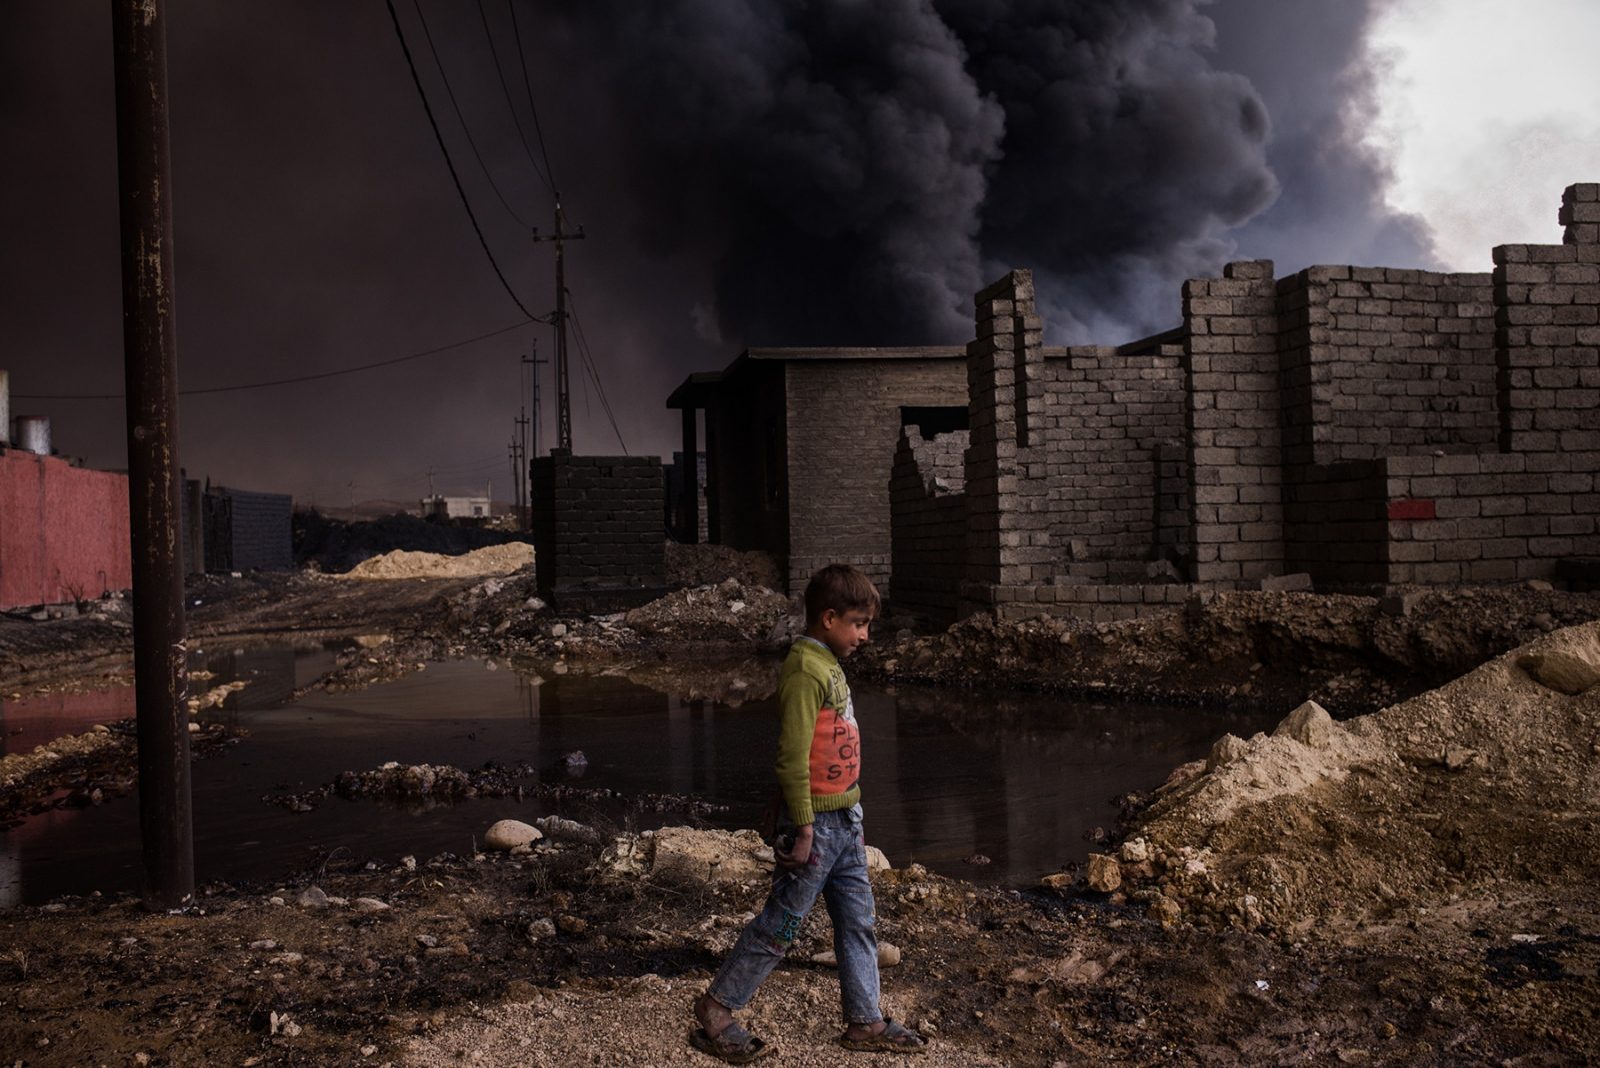 A boy walks through a street near his home in Qayyarah, Iraq, November 2016, as an oil well burns nearby. Many streets and neighborhoods in Qayyarah look apocalyptic, with oil residue covering all surfaces, turning small streets into muddy oil slicks, yet children can still be seen everywhere playing outside. Dozens of oil wells were set on fire as ISIS fighters retreated from the Iraqi Army in August, before the start of the Mosul offensive last month. The oil from Qayyarah provided a huge source of income for ISIS to help finance its activities. Many civilians stayed in their homes during the fight to retake the town and remain there today despite the months of smoke clouds hanging over the town.